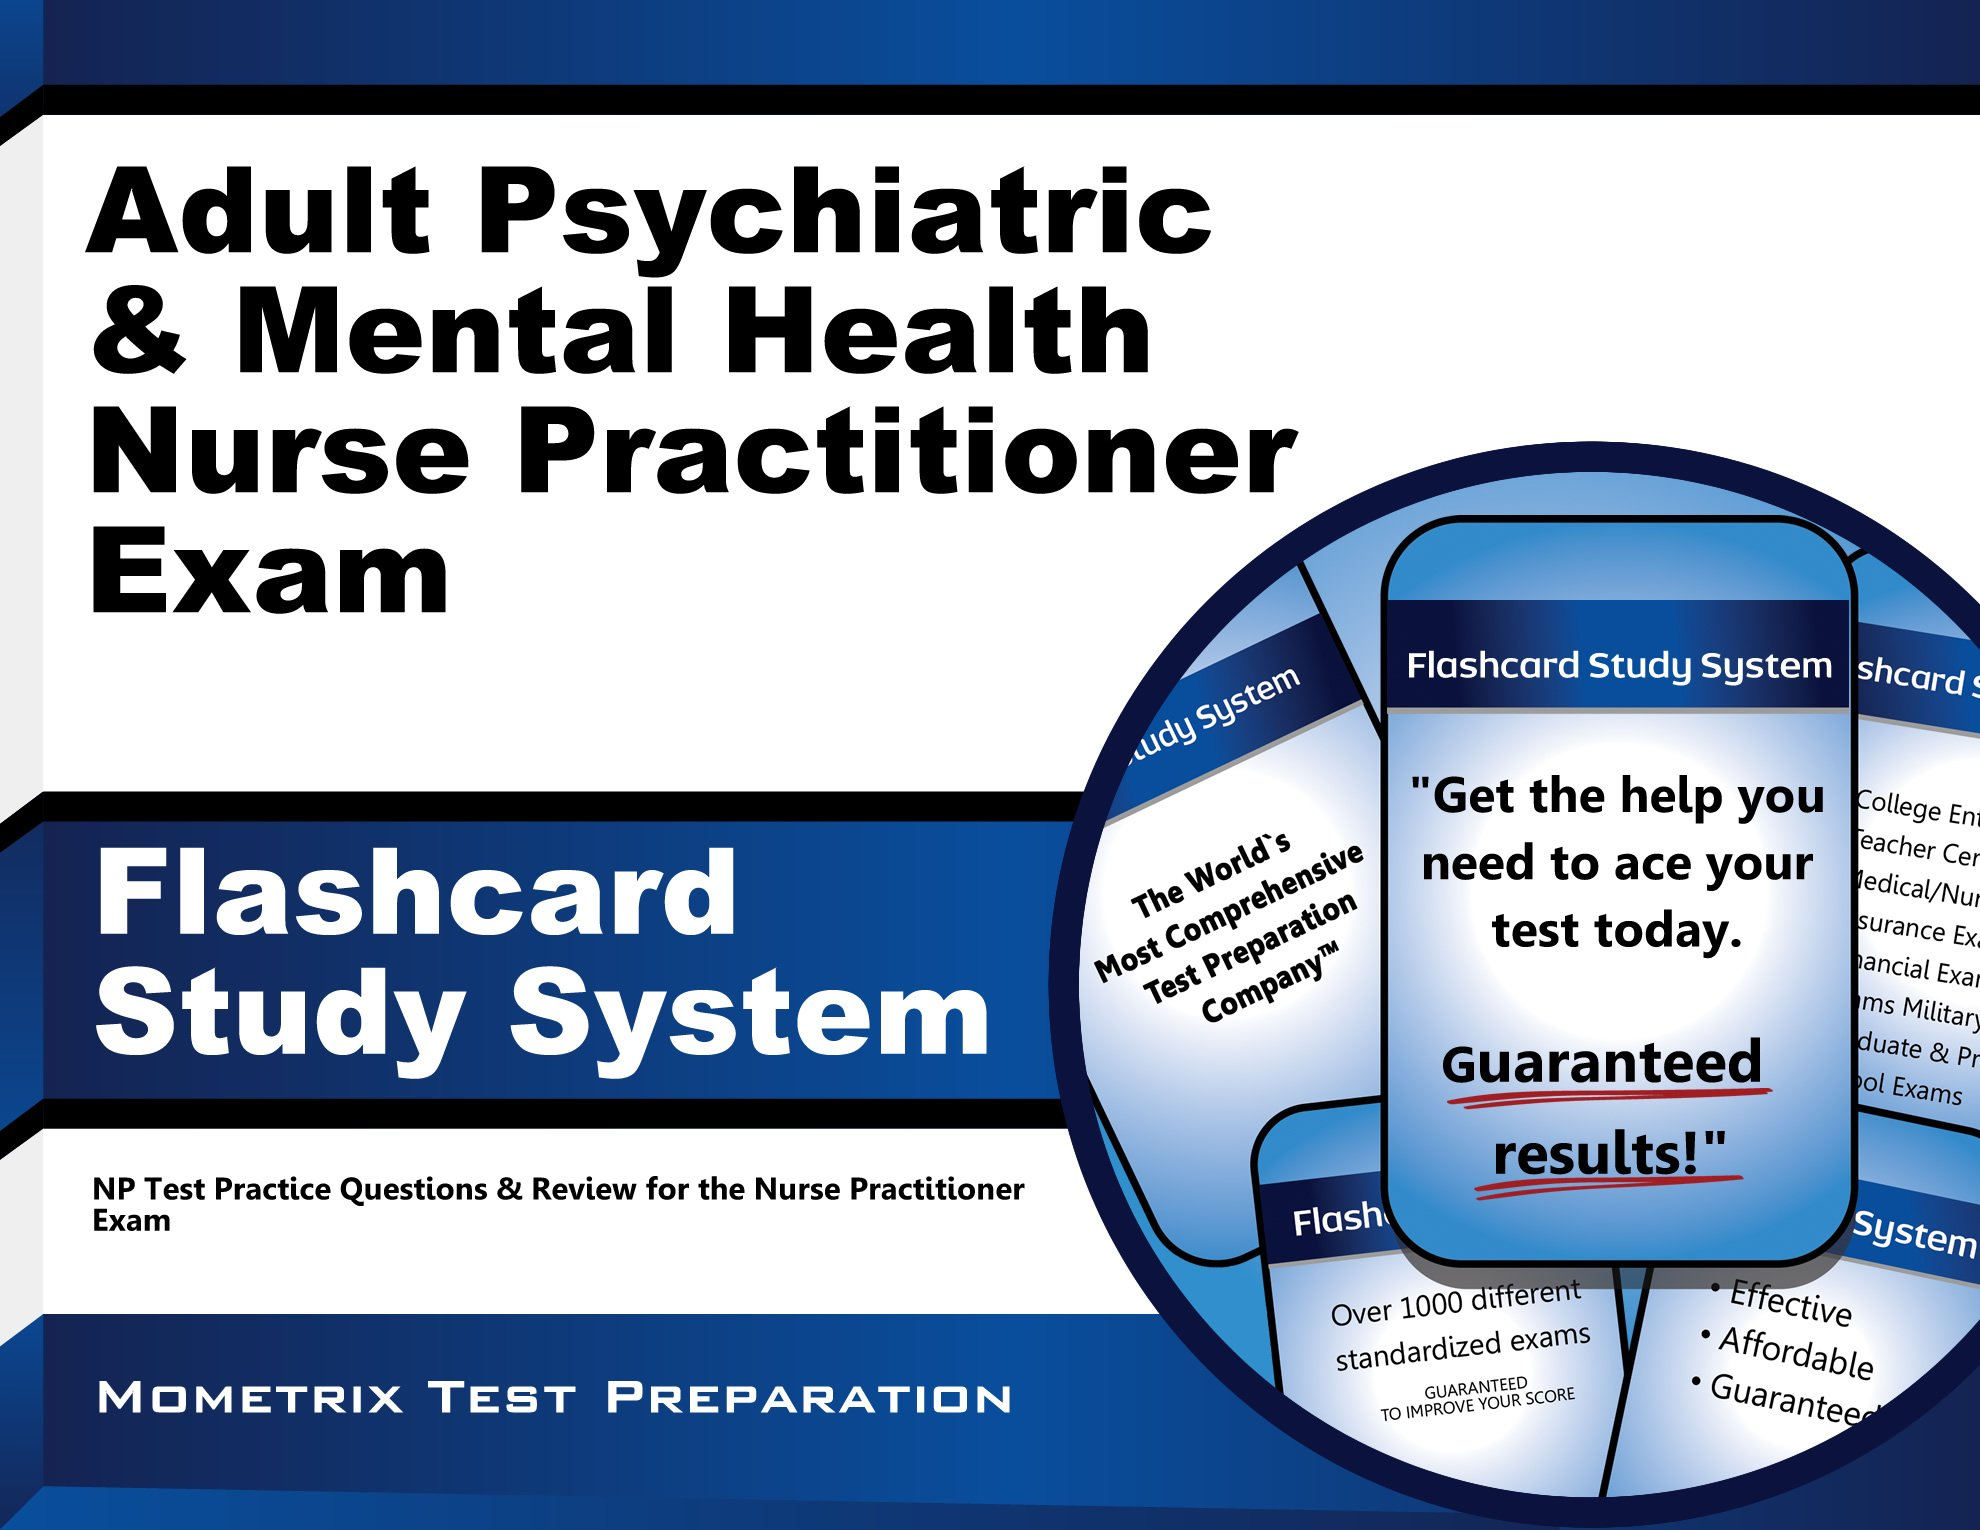 Download Adult Psychiatric & Mental Health Nurse Practitioner Exam Flashcard Study System: NP Test Practice Questions & Review for the Nurse Practitioner Exam ebook